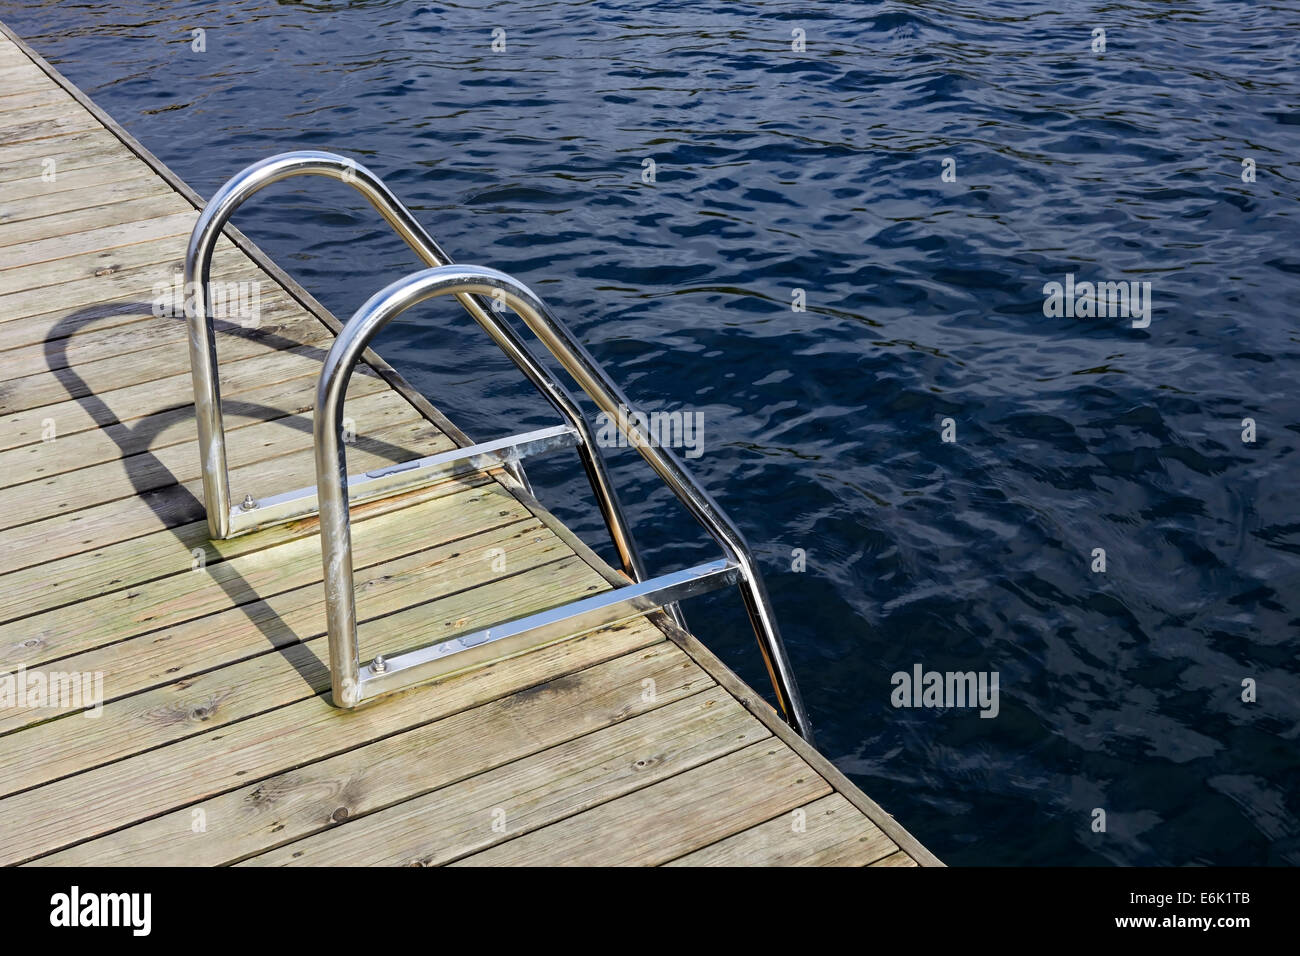 handrails and ladder on wooden jetty Stock Photo